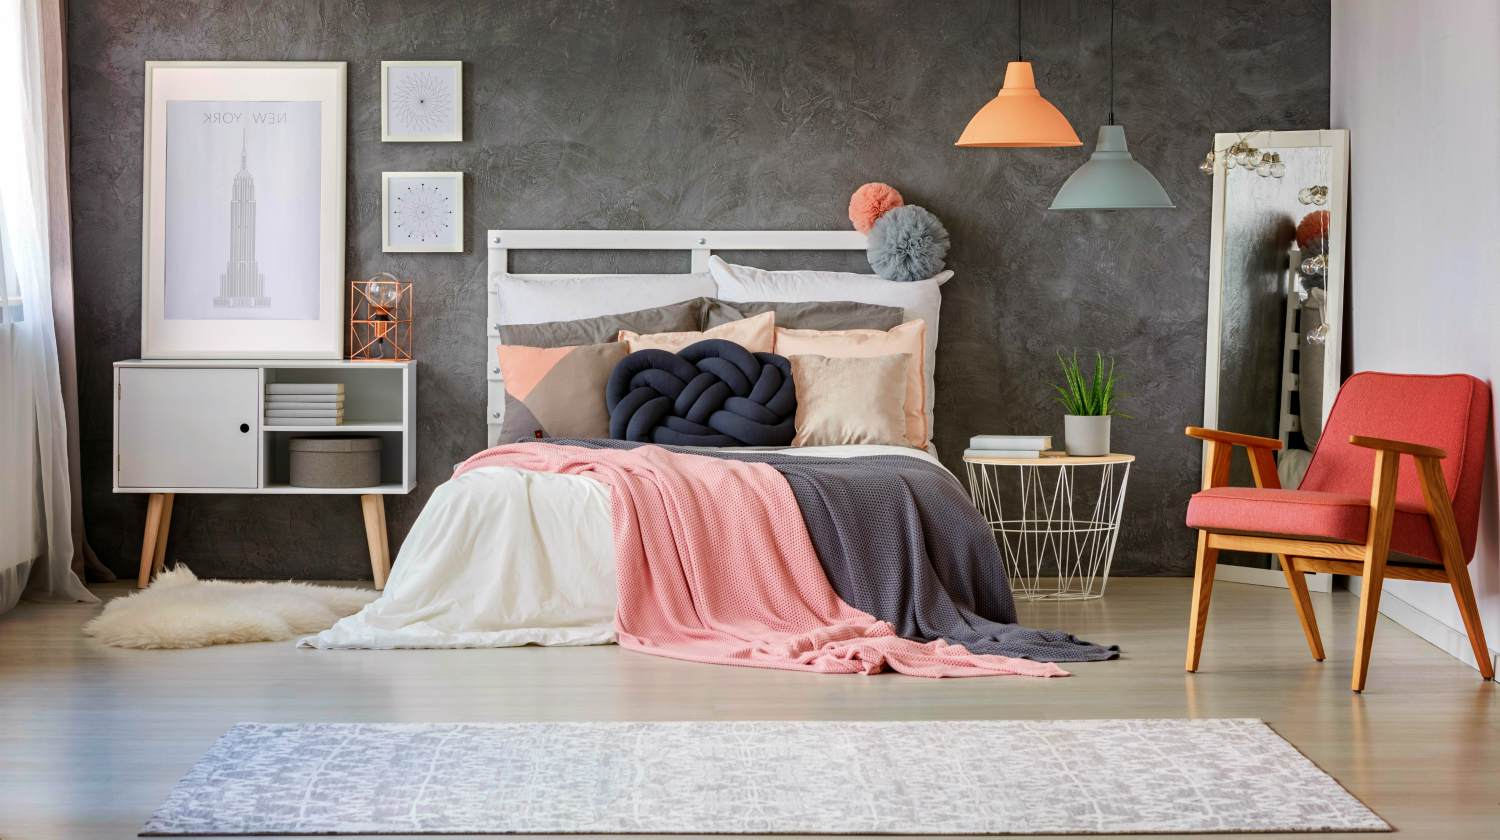 Teen Room Decor Ideas For Girls To Diy Diy Projects